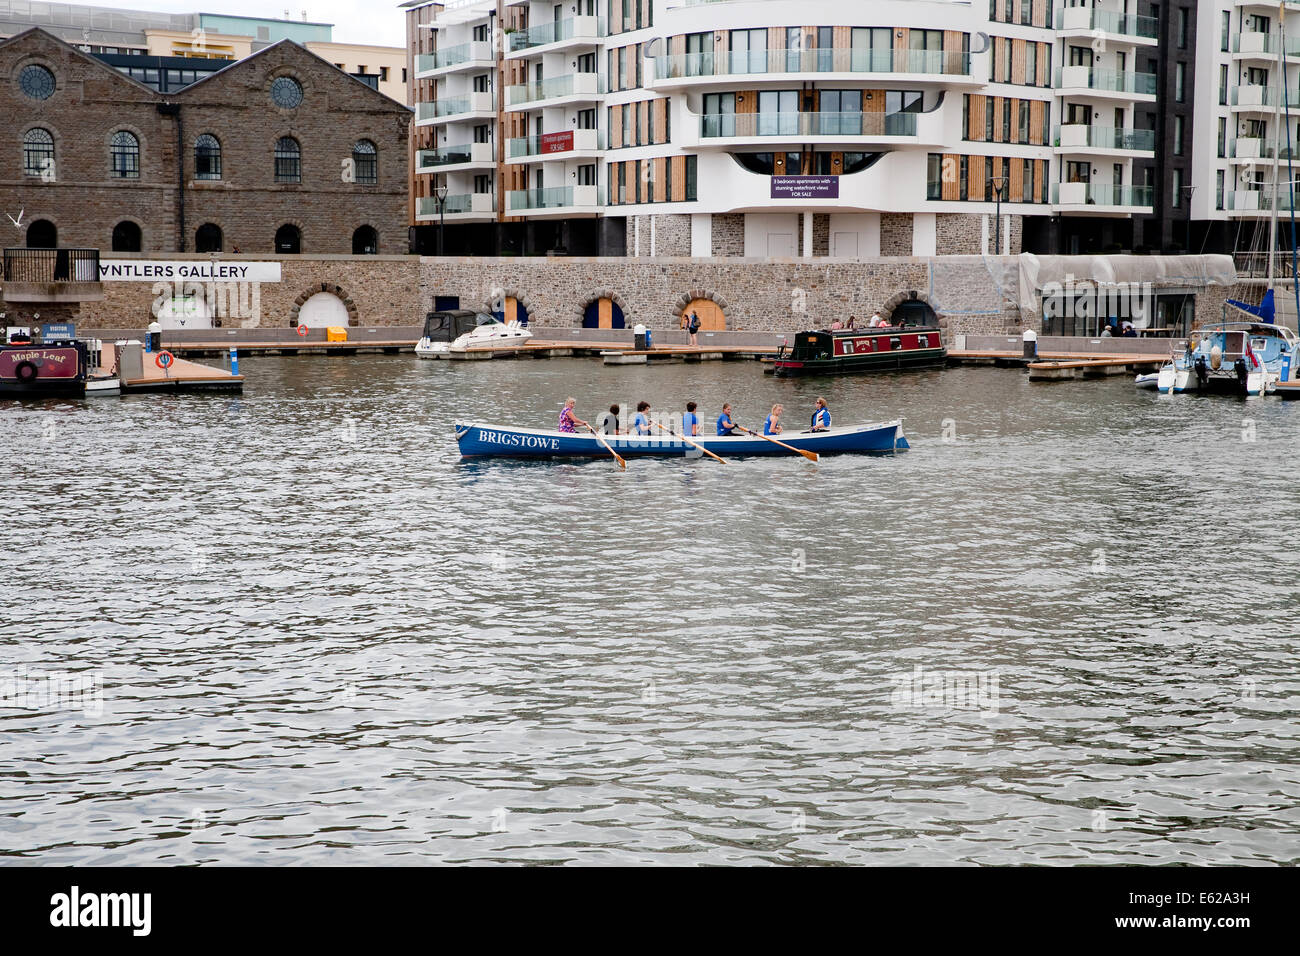 A large rowing boat on the water in Bristol UK - Stock Image